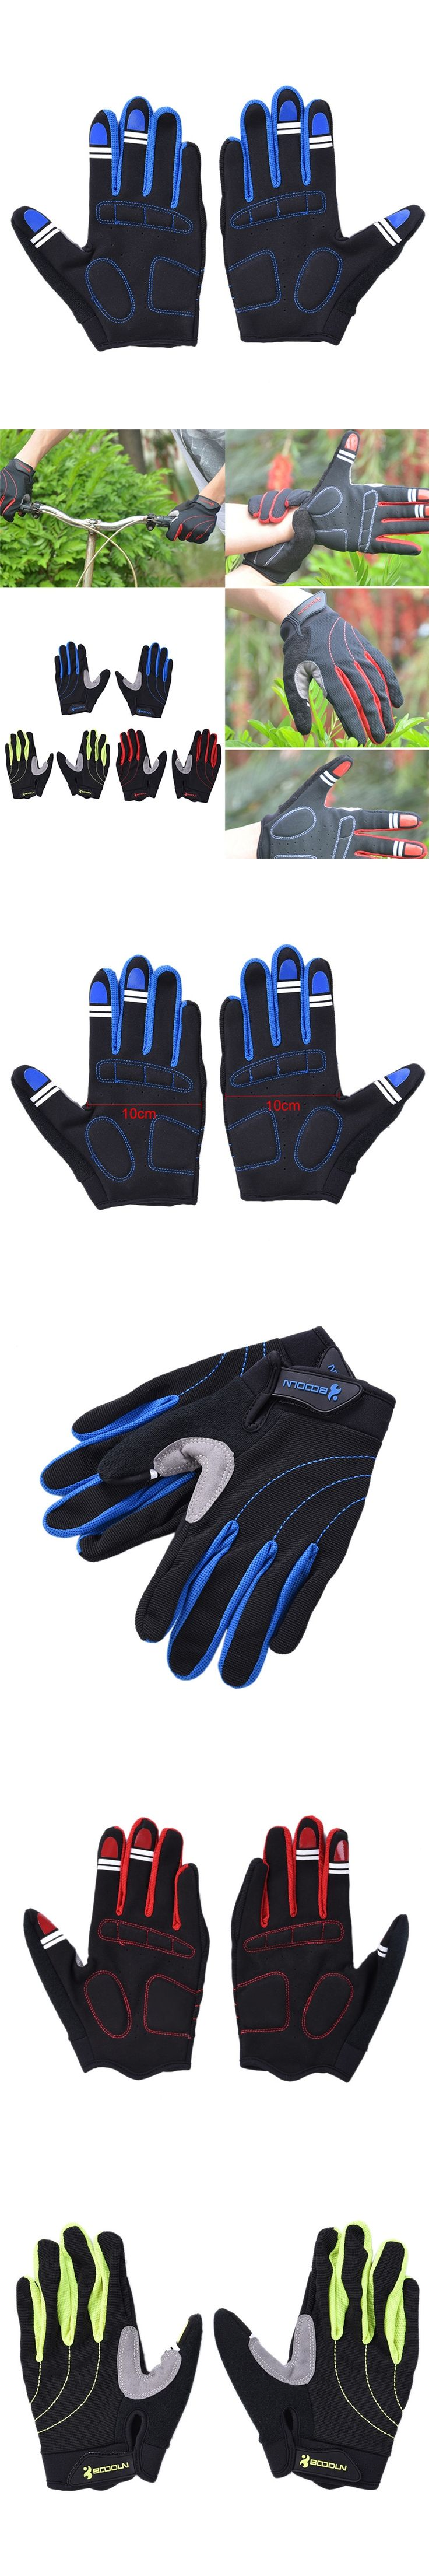 High Quality Man and Women Bike Glove Full Finger Long Gel Polyester Silicone Road Mountain Bike Gloves Cycling MTB Glove